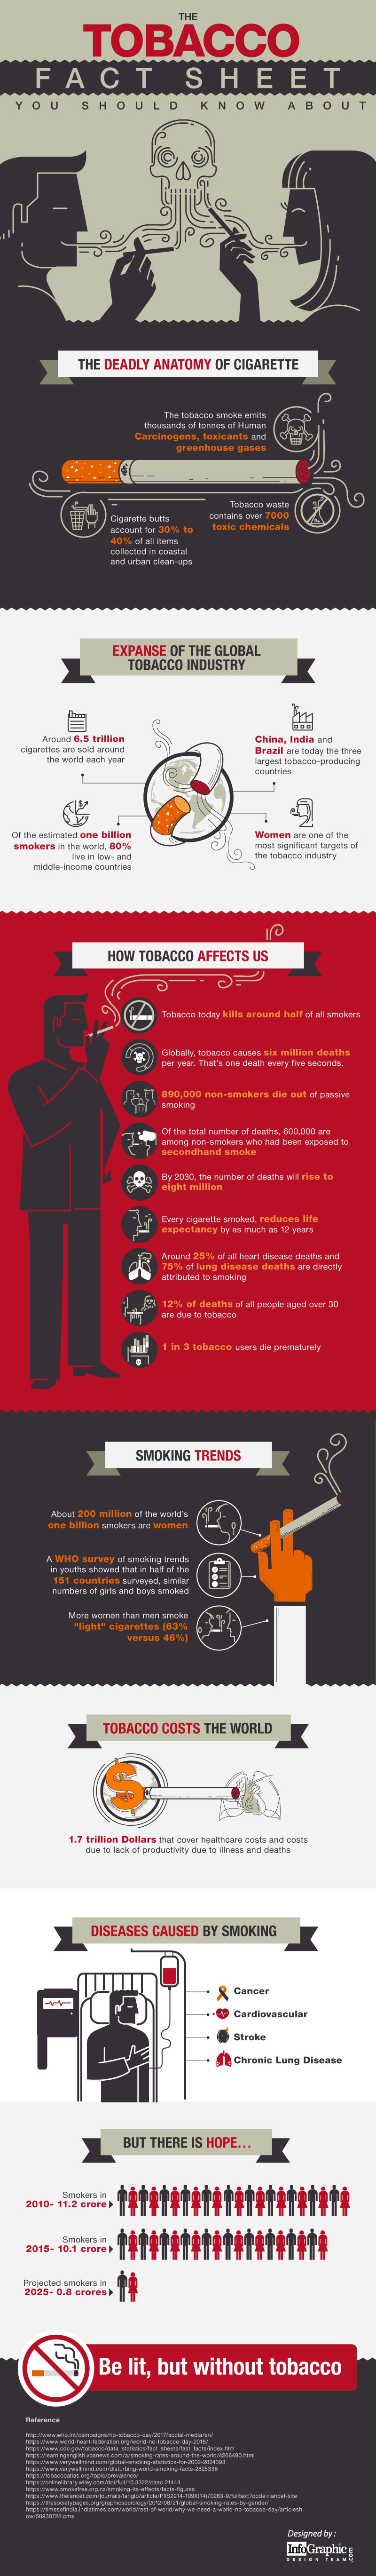 Tobacco Fact Sheet You Should Know About